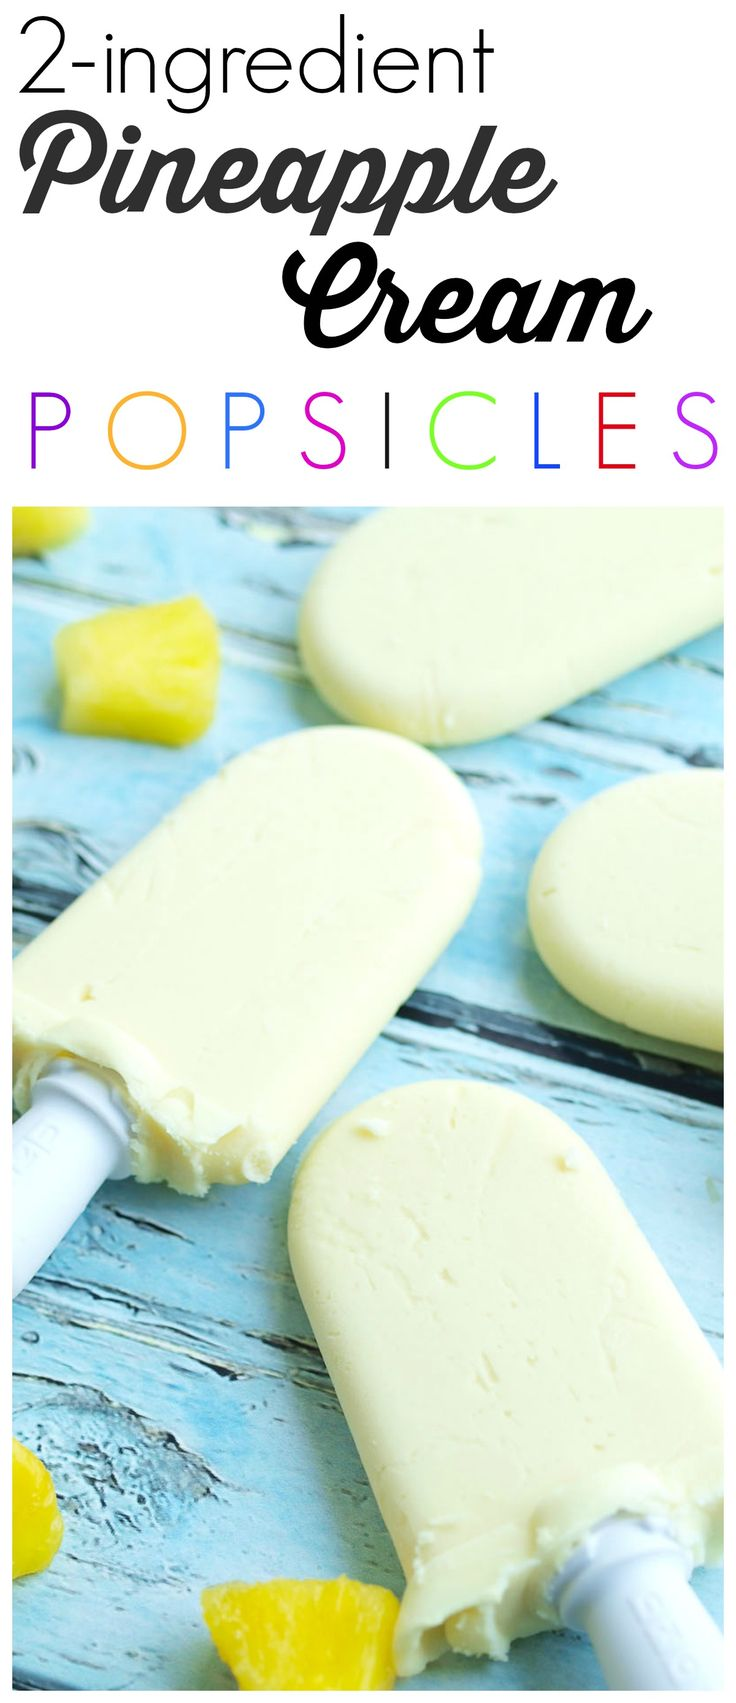 2 ingredient Pineapple Cream Popsicles (dairy-free) Nothing fake here! All natural and no sugar added! These healthy homemade popsicles are a perfect summer treat!